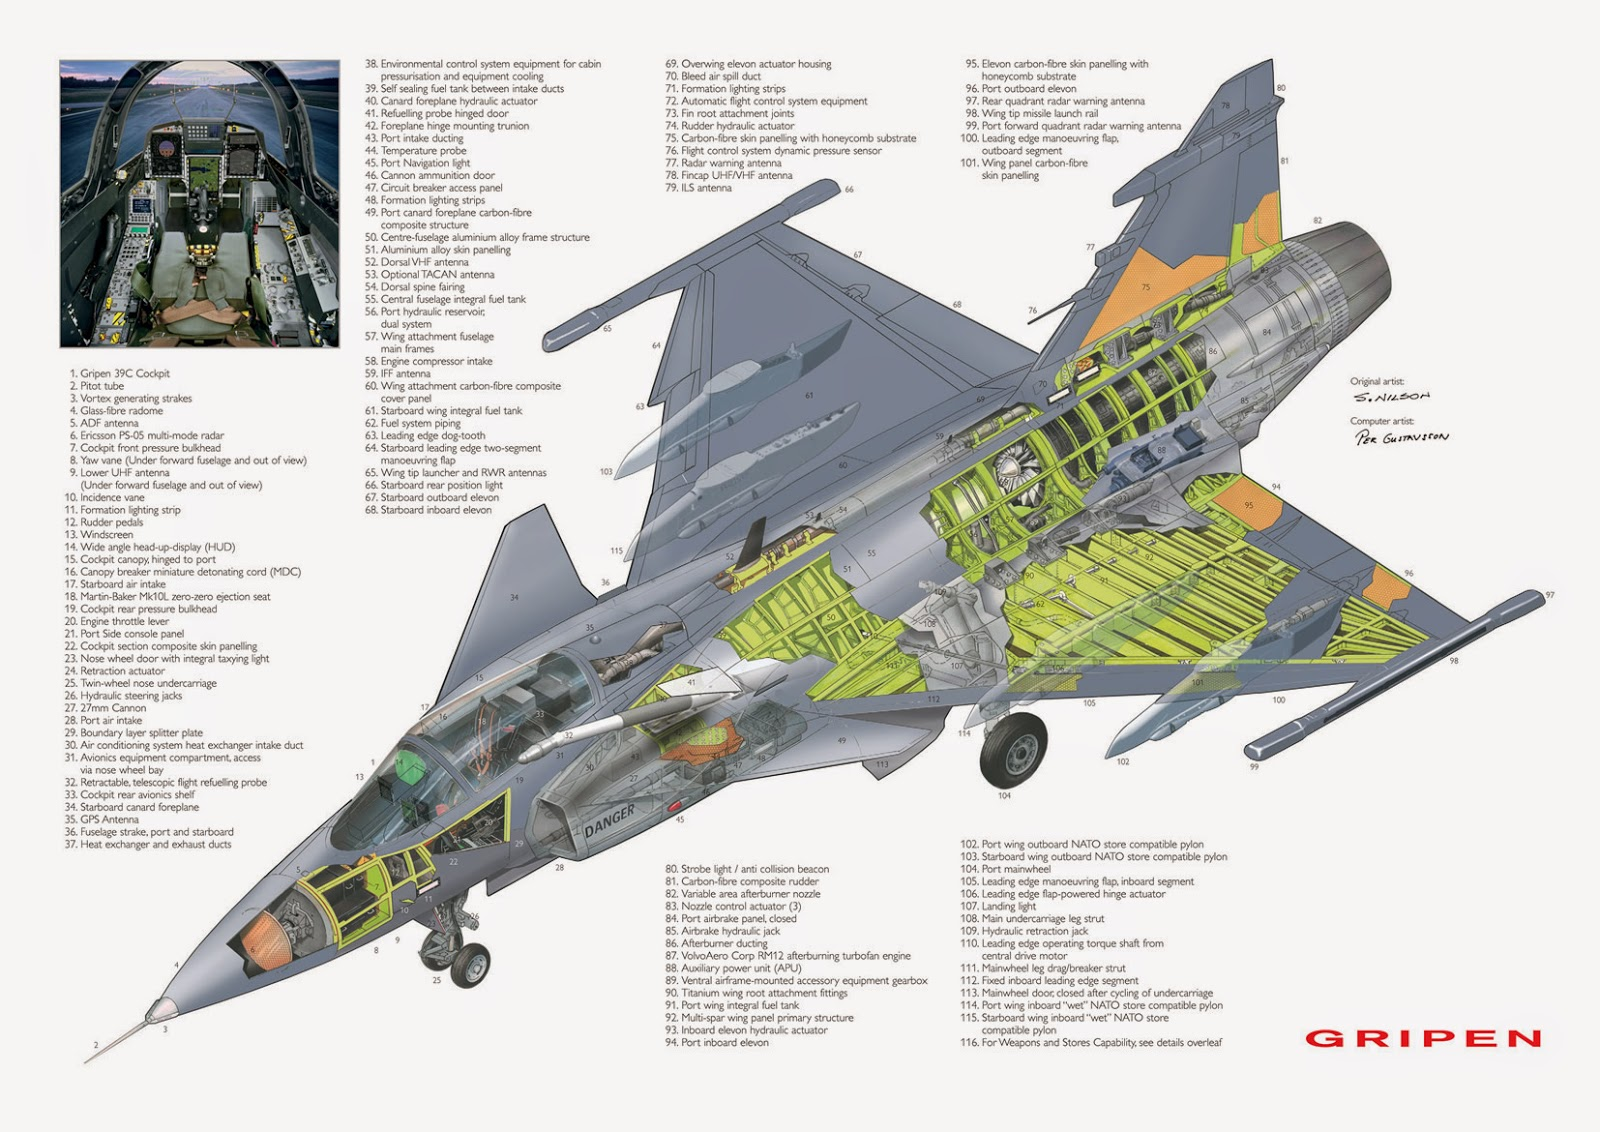 F 16 Fighter Diagram Wiring For Professional 35b Engine 35 Aircraft Cutaway Free Image Engines